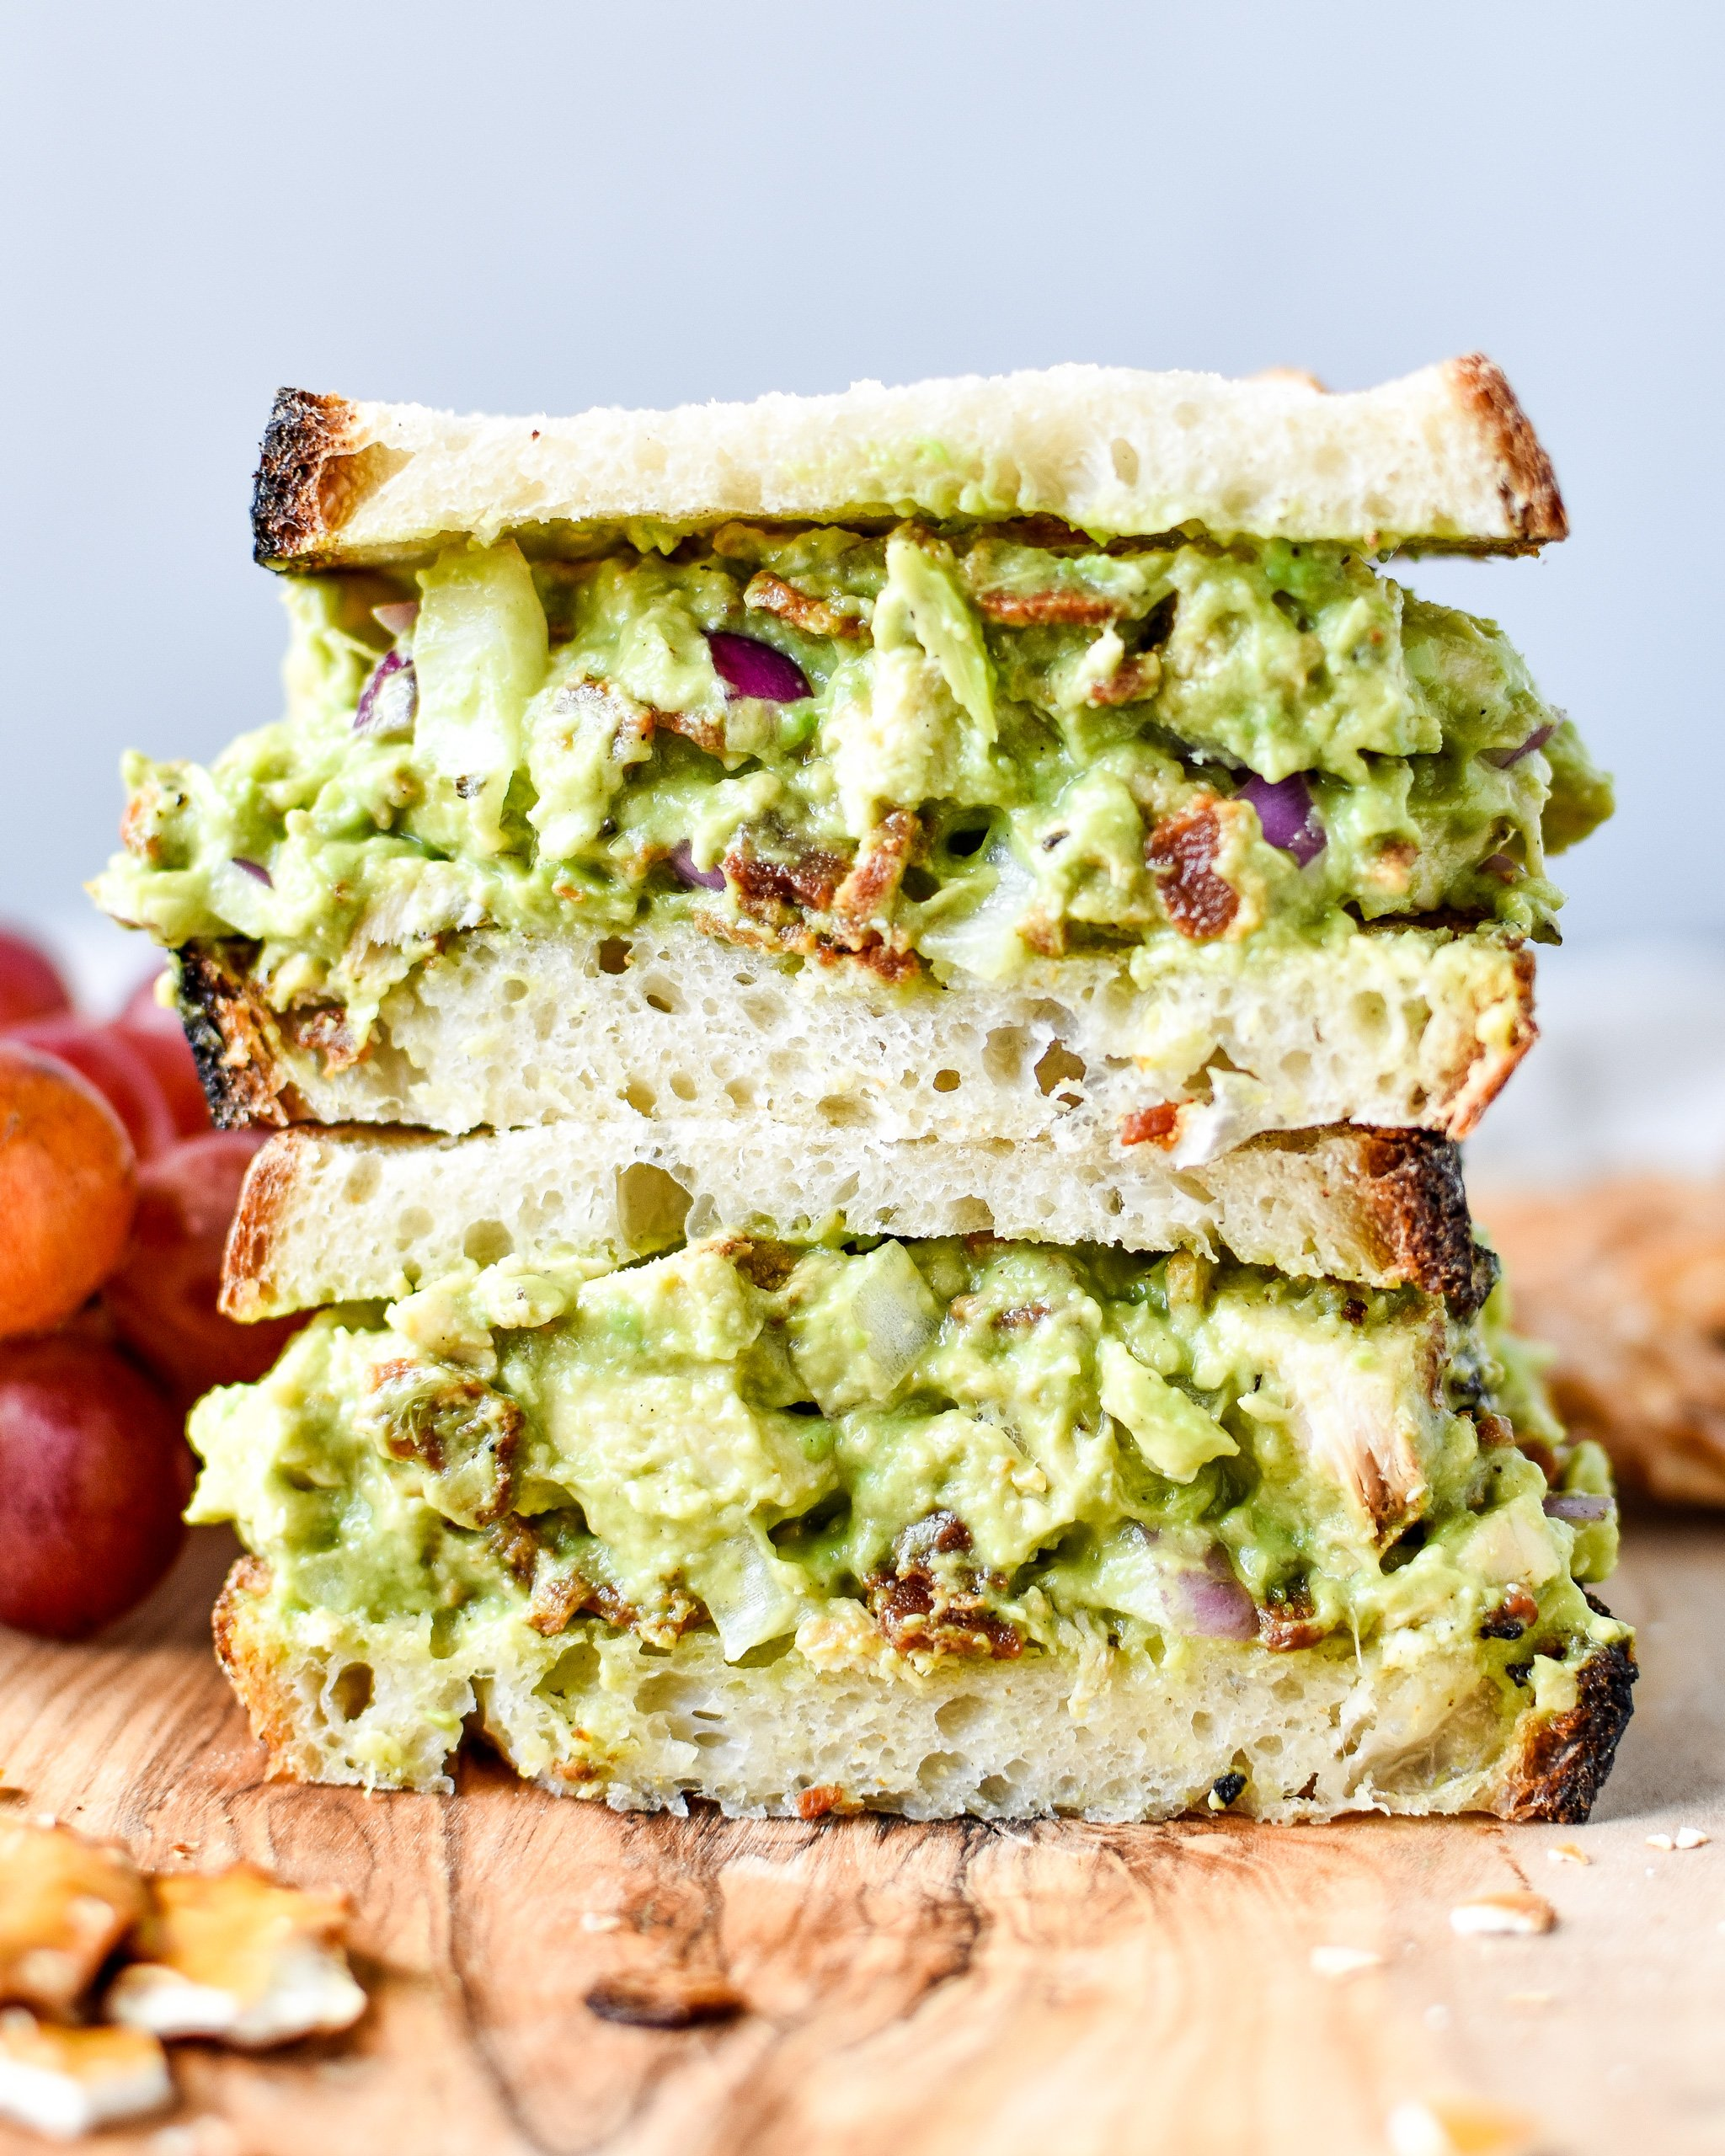 Two halves of chicken bacon avocado salad sandwich stacked on top of each other.